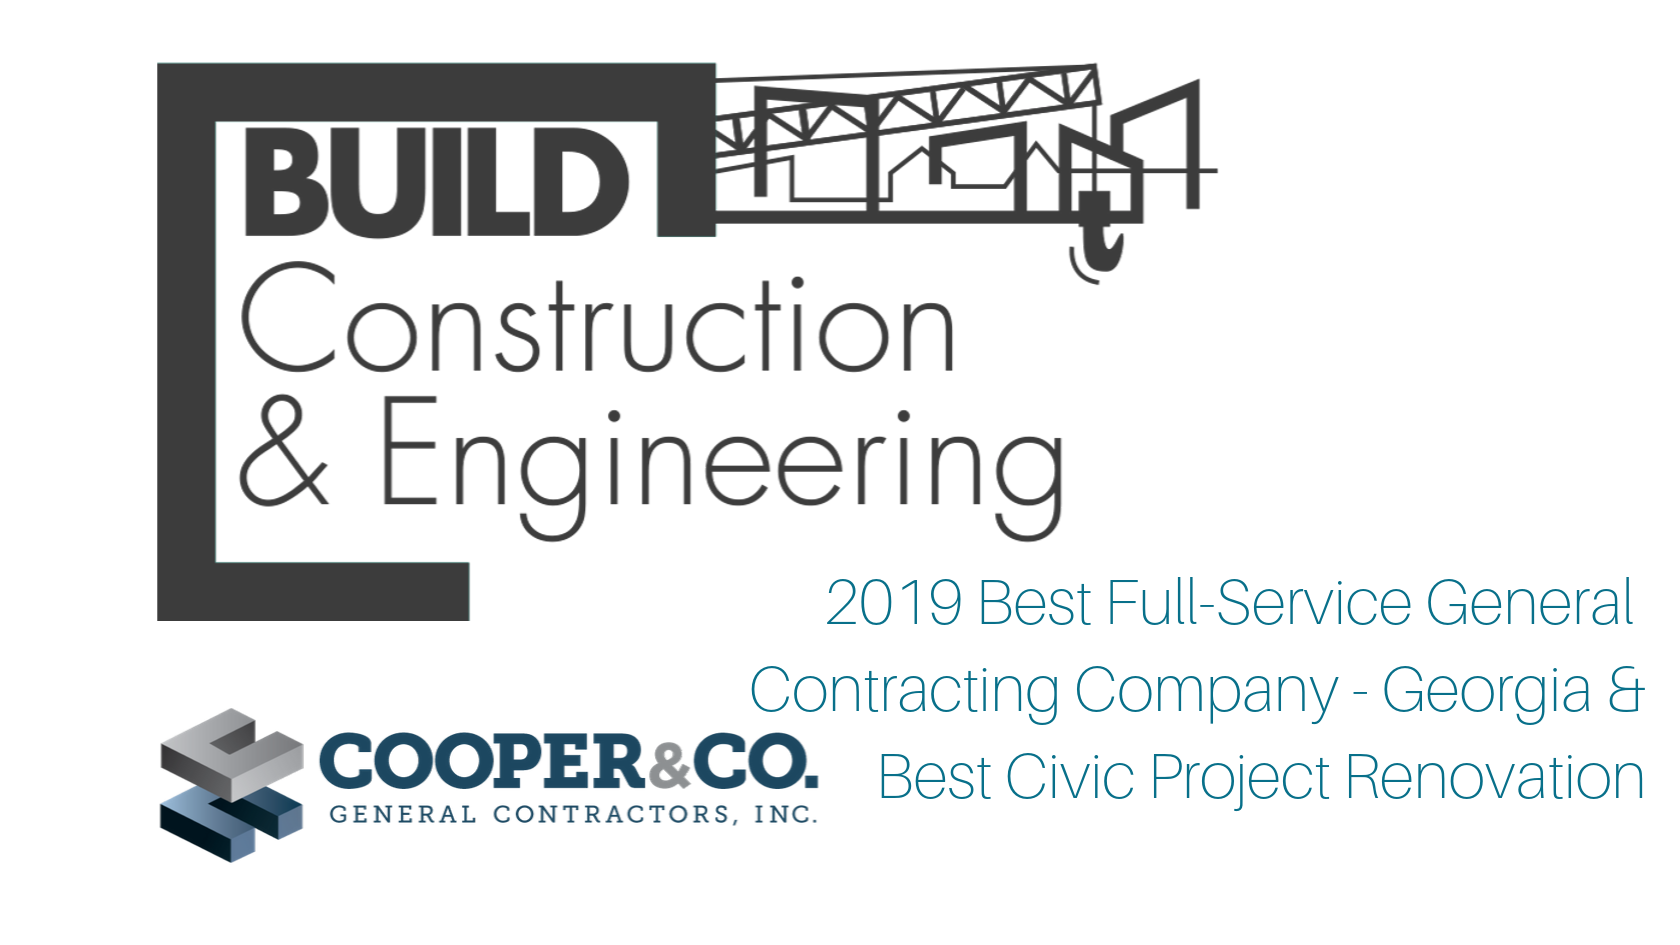 Best Full-Service General Contracting Company - Georgia & Best Civic Project Renovation(1)